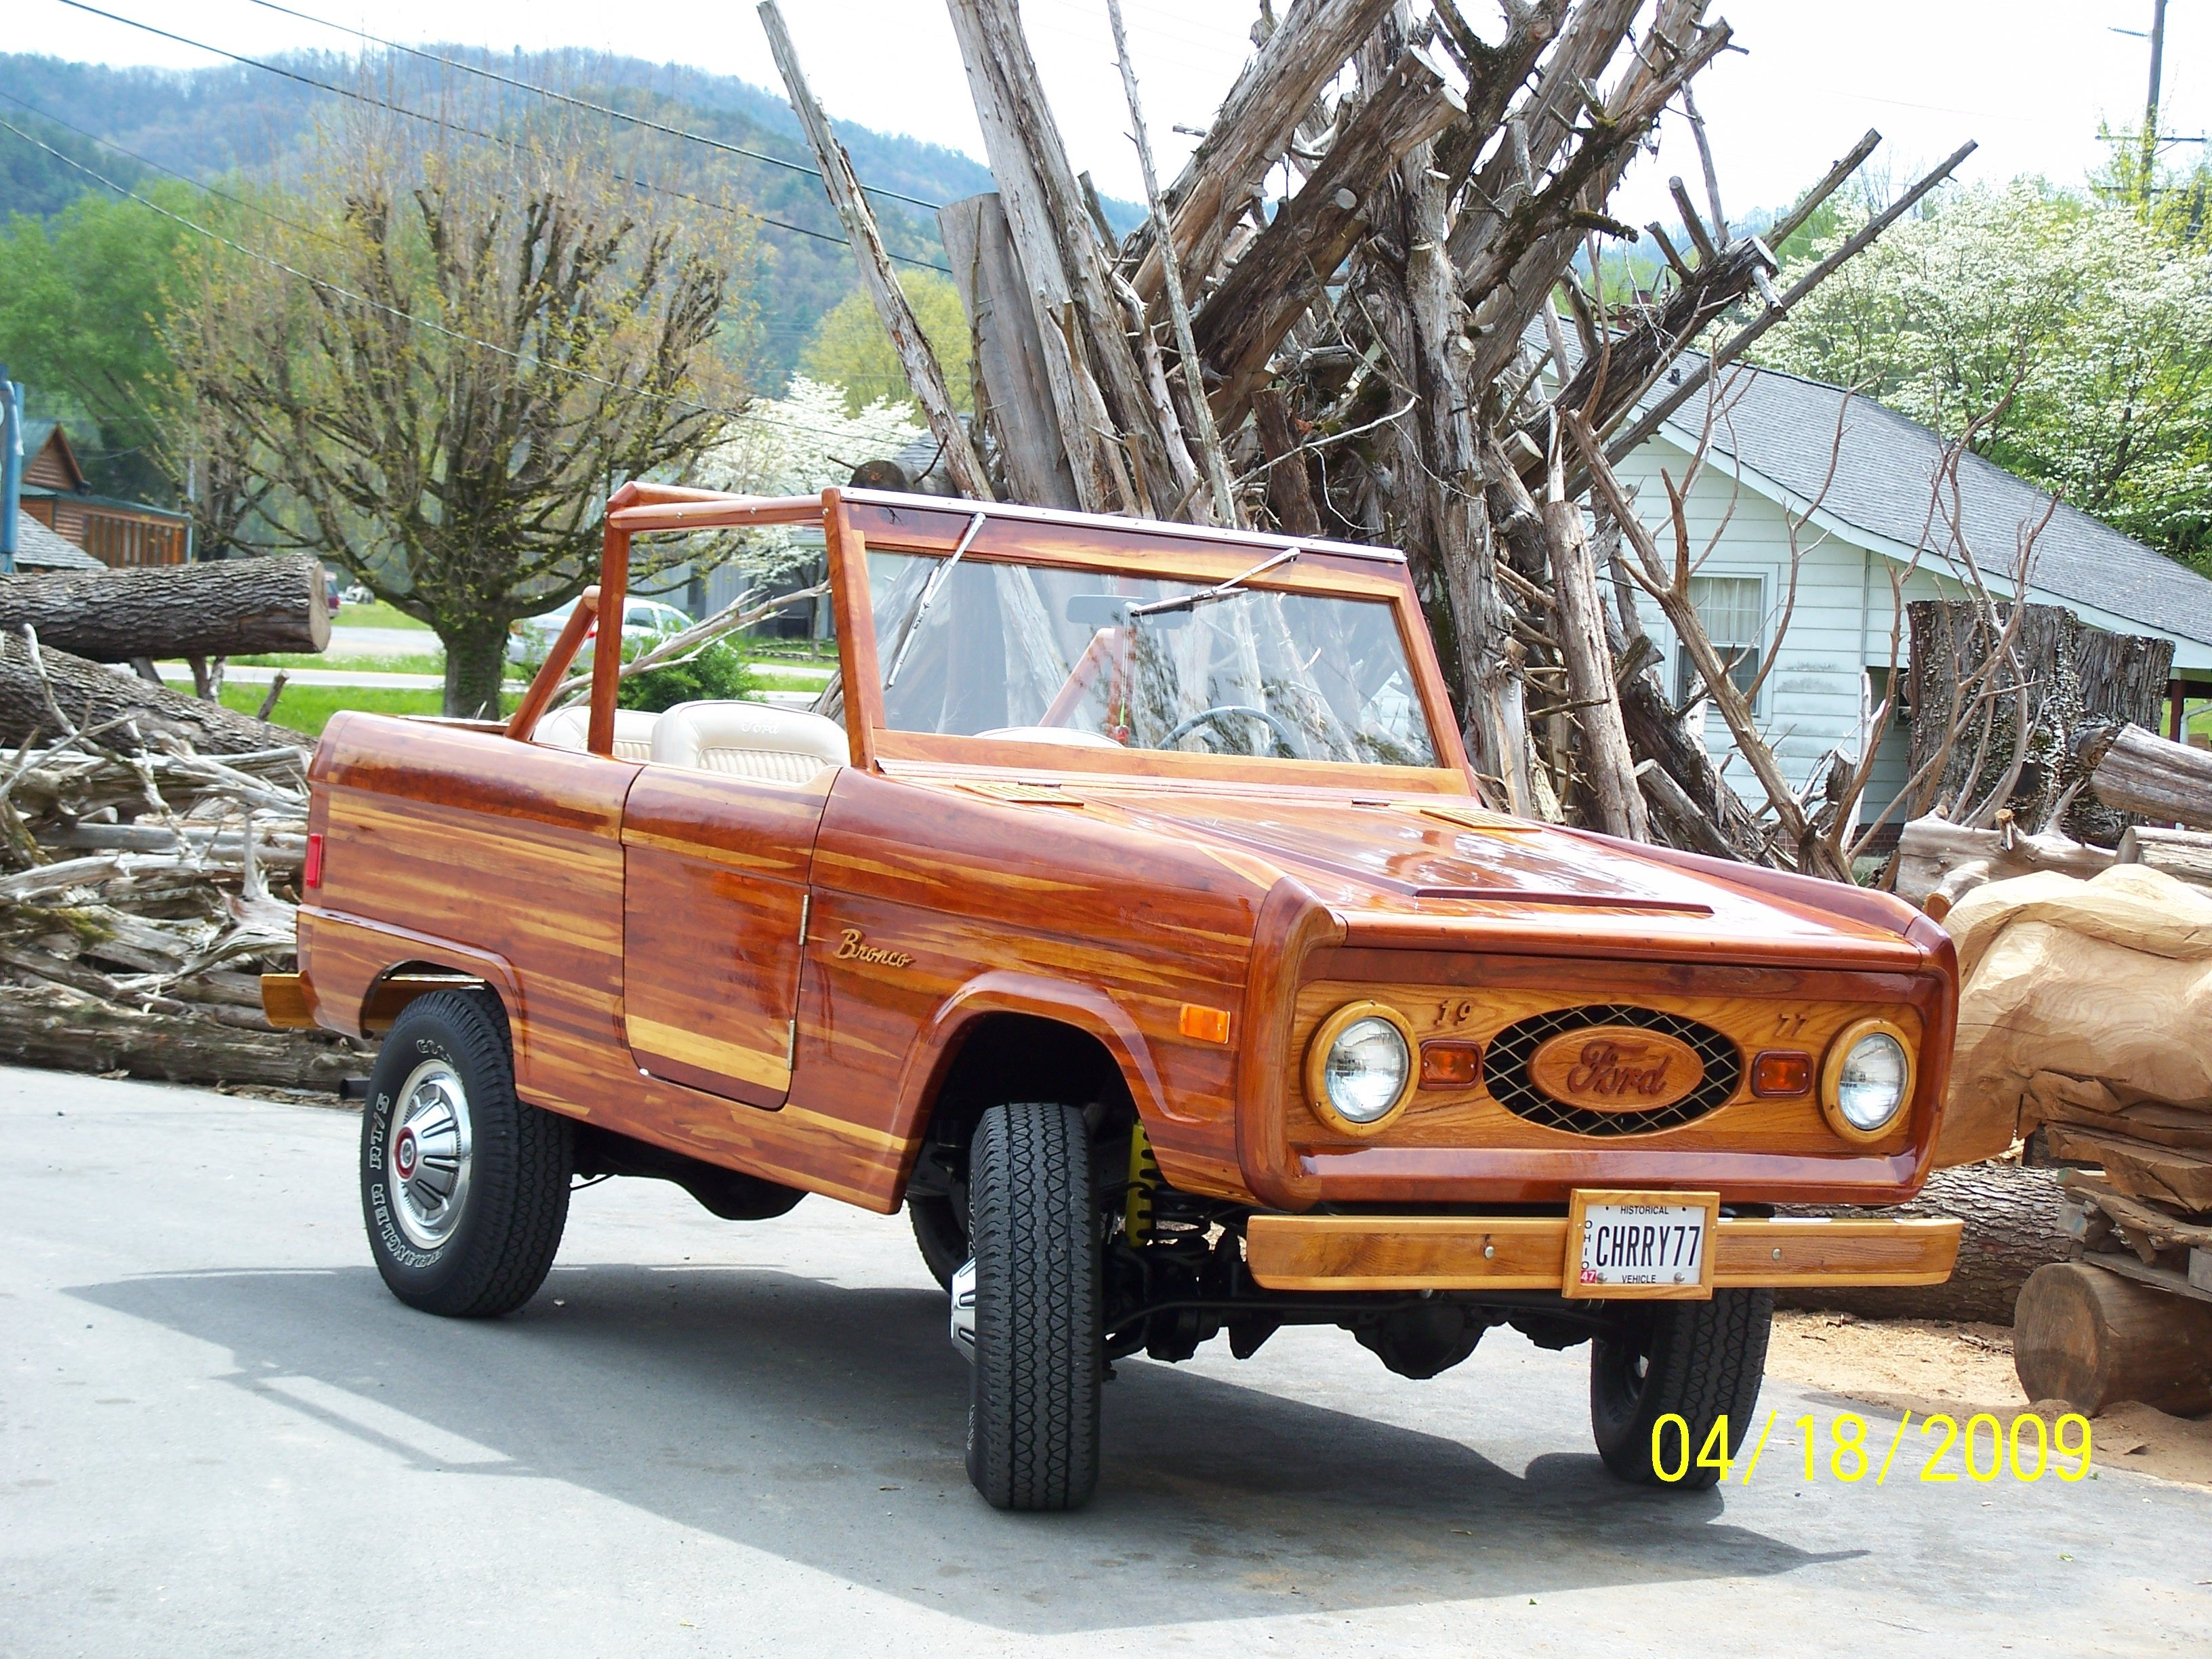 1977 Ford Bronco At Bronco Driver Show Townsend Tn Ford Bronco Wooden Car Bronco